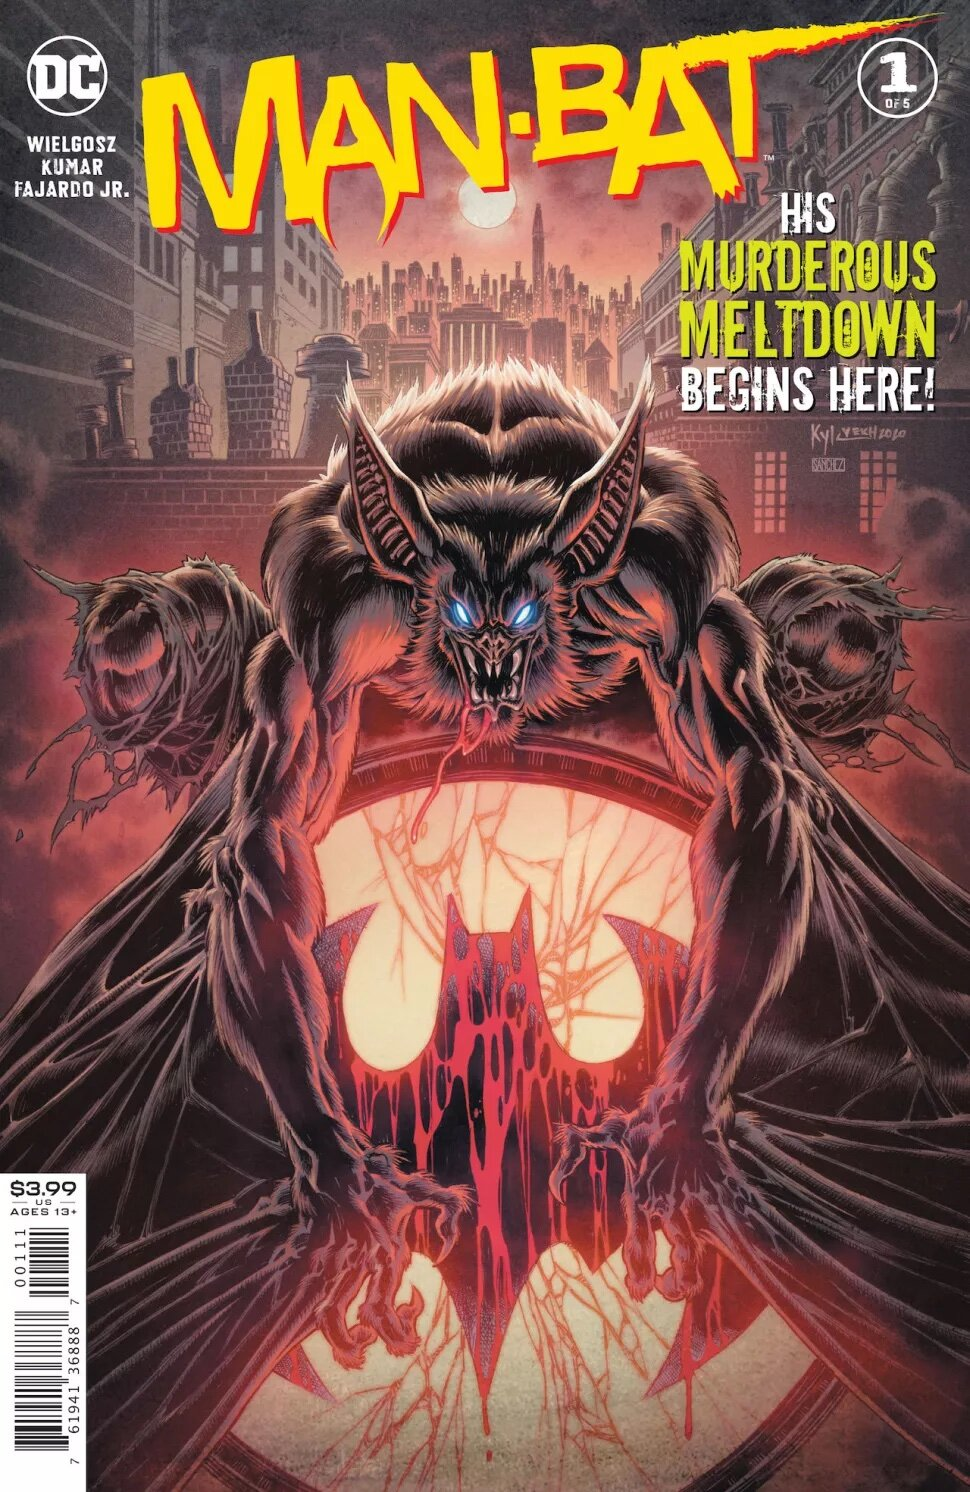 """SYNOPSIS:  """"Man-Bat is on the run from the law following a horrific night of blood and mayhem on the streets of Gotham City,"""" reads DC's description of the Man-Bat limited series, which puts Langstrom's monstrous alter ego up against several DC heroes.    """"But the police aren't what Kirk Langstrom's monstrous alter ego should worry about… it's Task Force X, better known as the Suicide Squad!,"""" it continues. """"To undo the damage he has caused, Man-Bat must seek a cure for the innocents he has injured, all while staying out of the deadly sights of the world's most dangerous mercenaries!"""""""